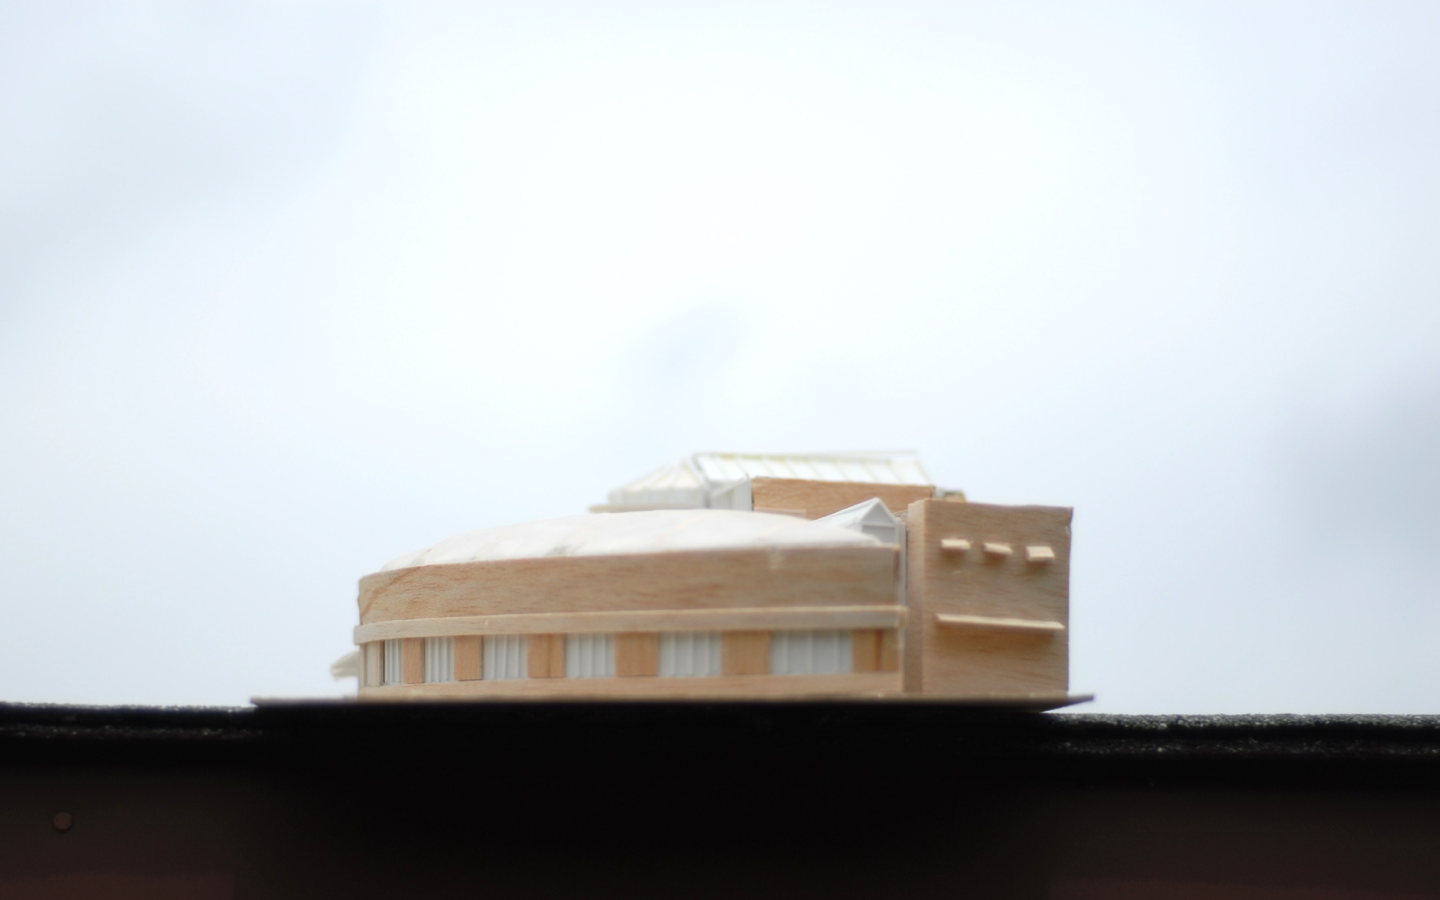 Final Model - Photographic Arts Center, by Sanjiv Sirpal